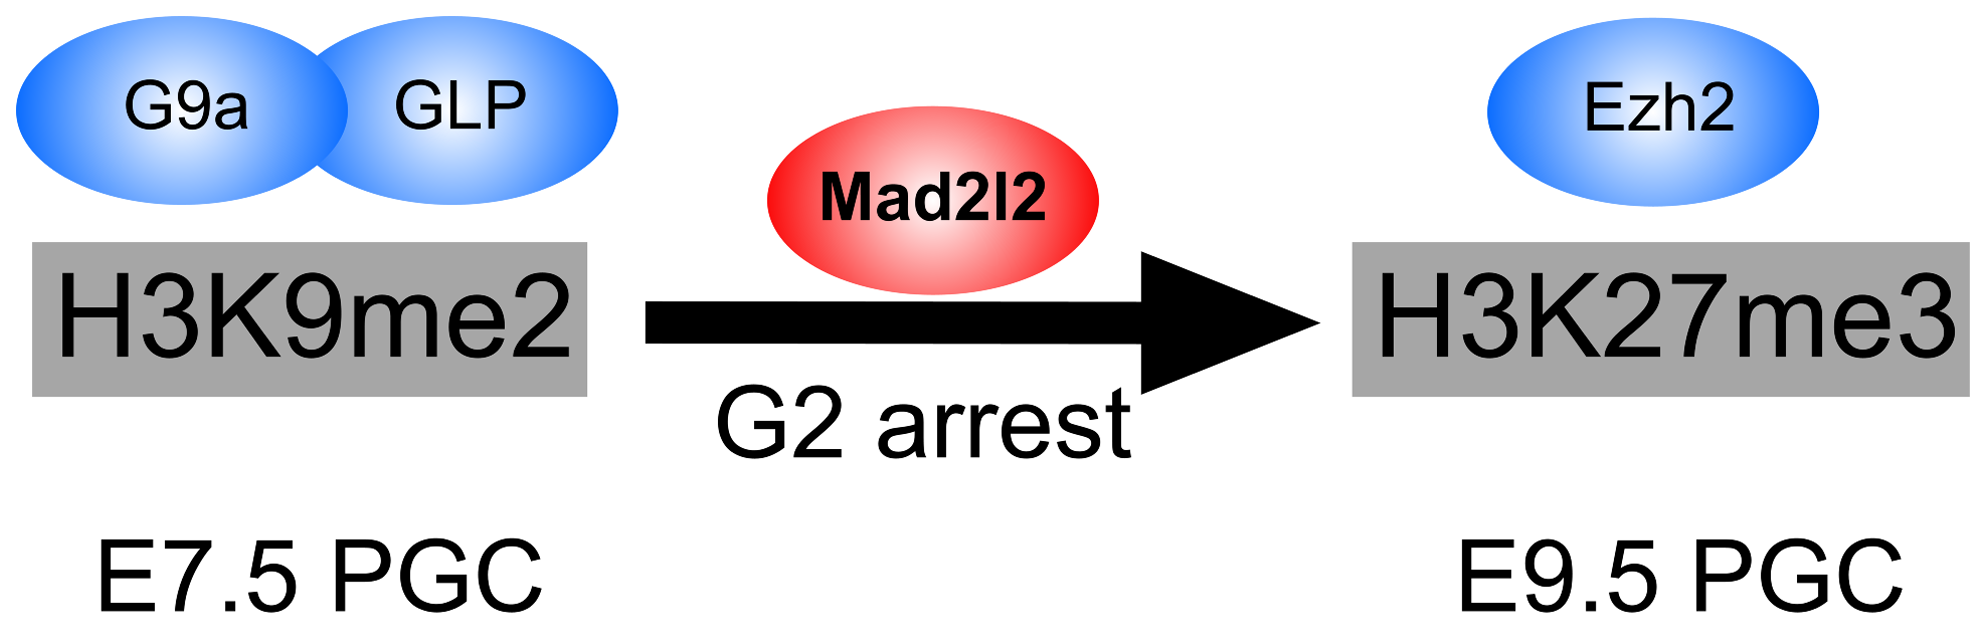 The role of Mad2l2 in epigenetic reprogramming and G2 arrest in PGCs.